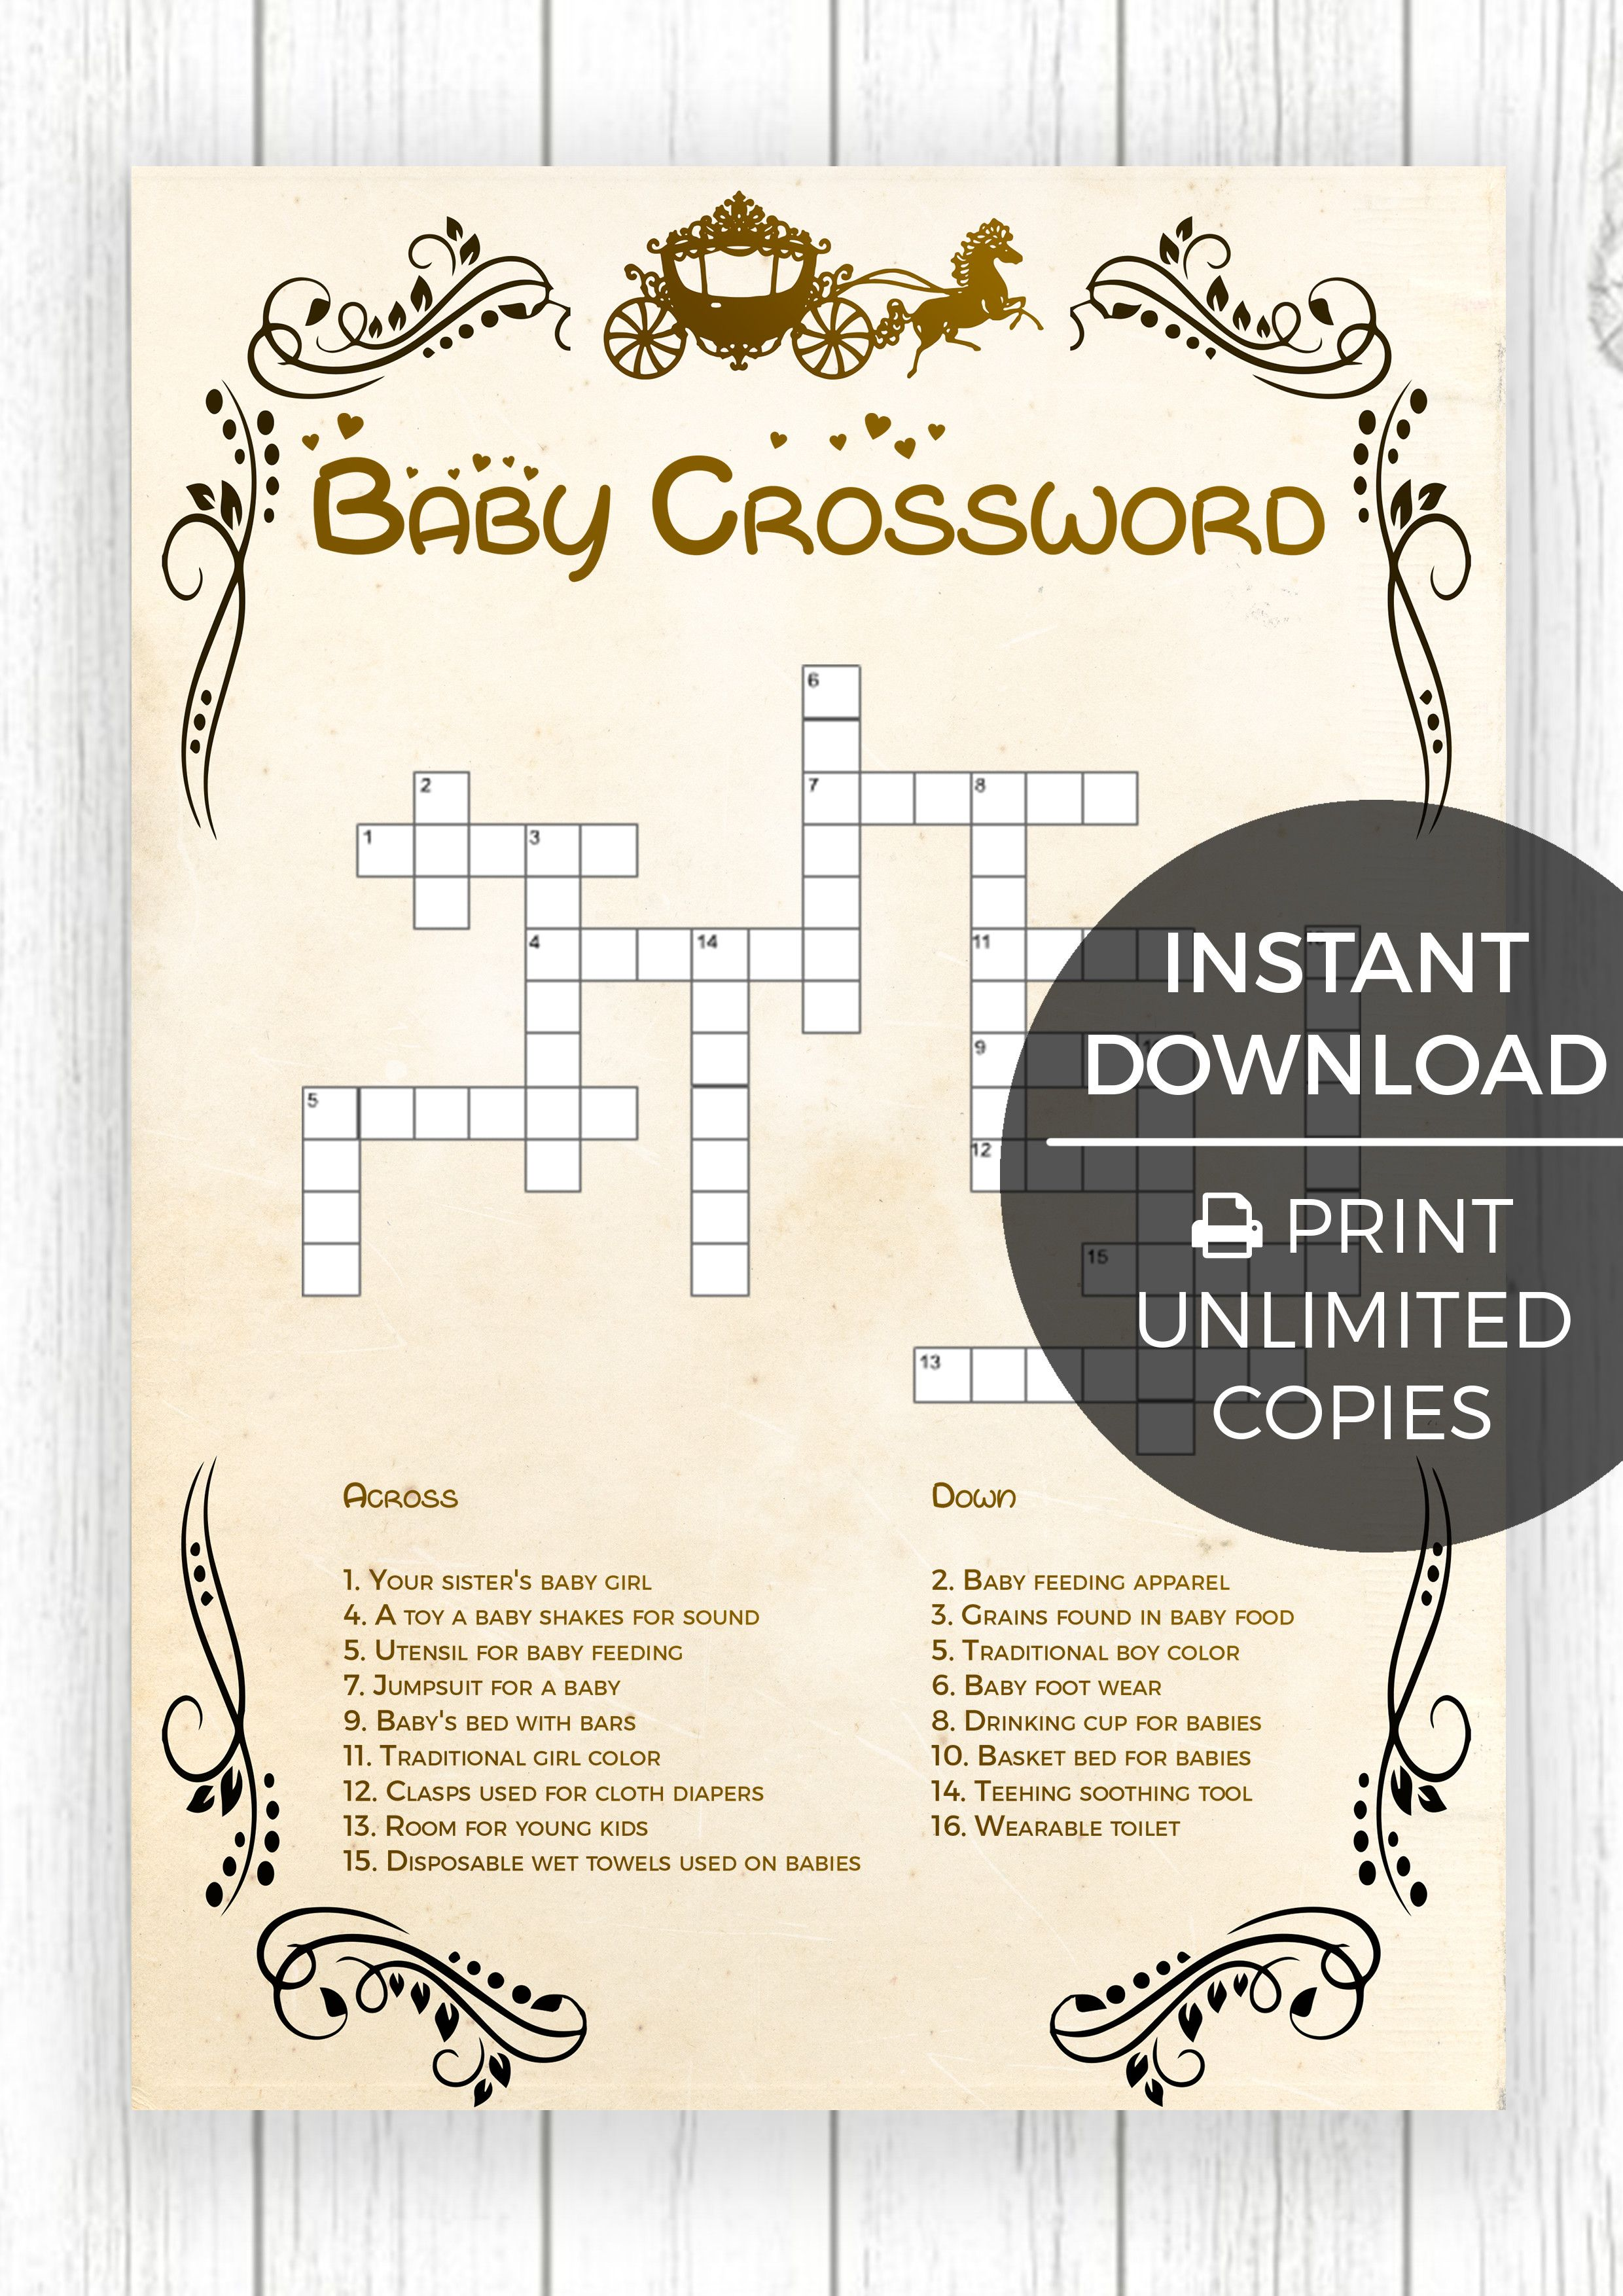 Baby Crossword Puzzle Little Princess Edition This Baby Shower Game Is Perfect For People Of